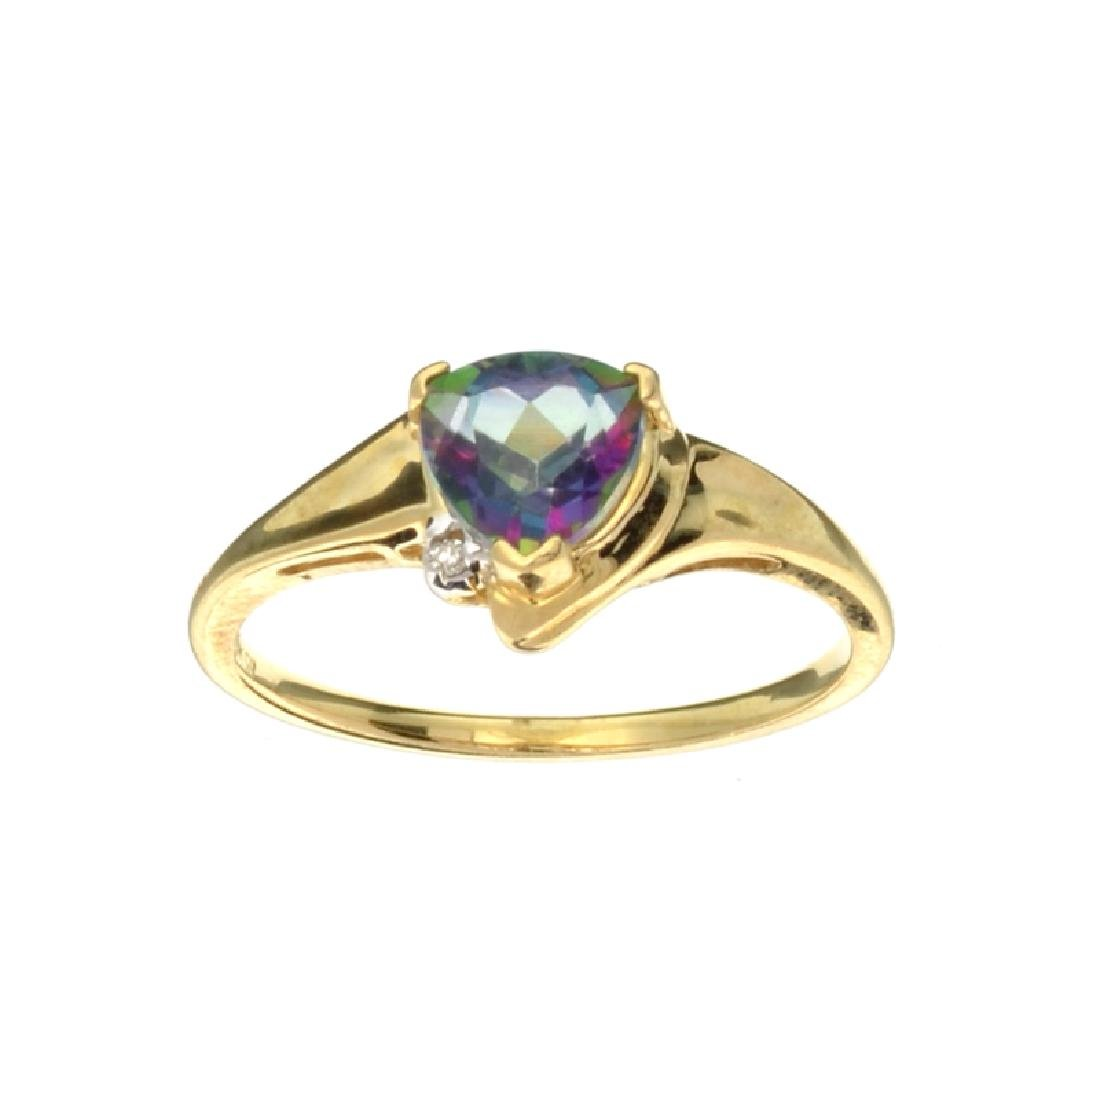 APP: 0.6k Fine Jewelry 10kt. Yellow/White Gold, 1.00CT